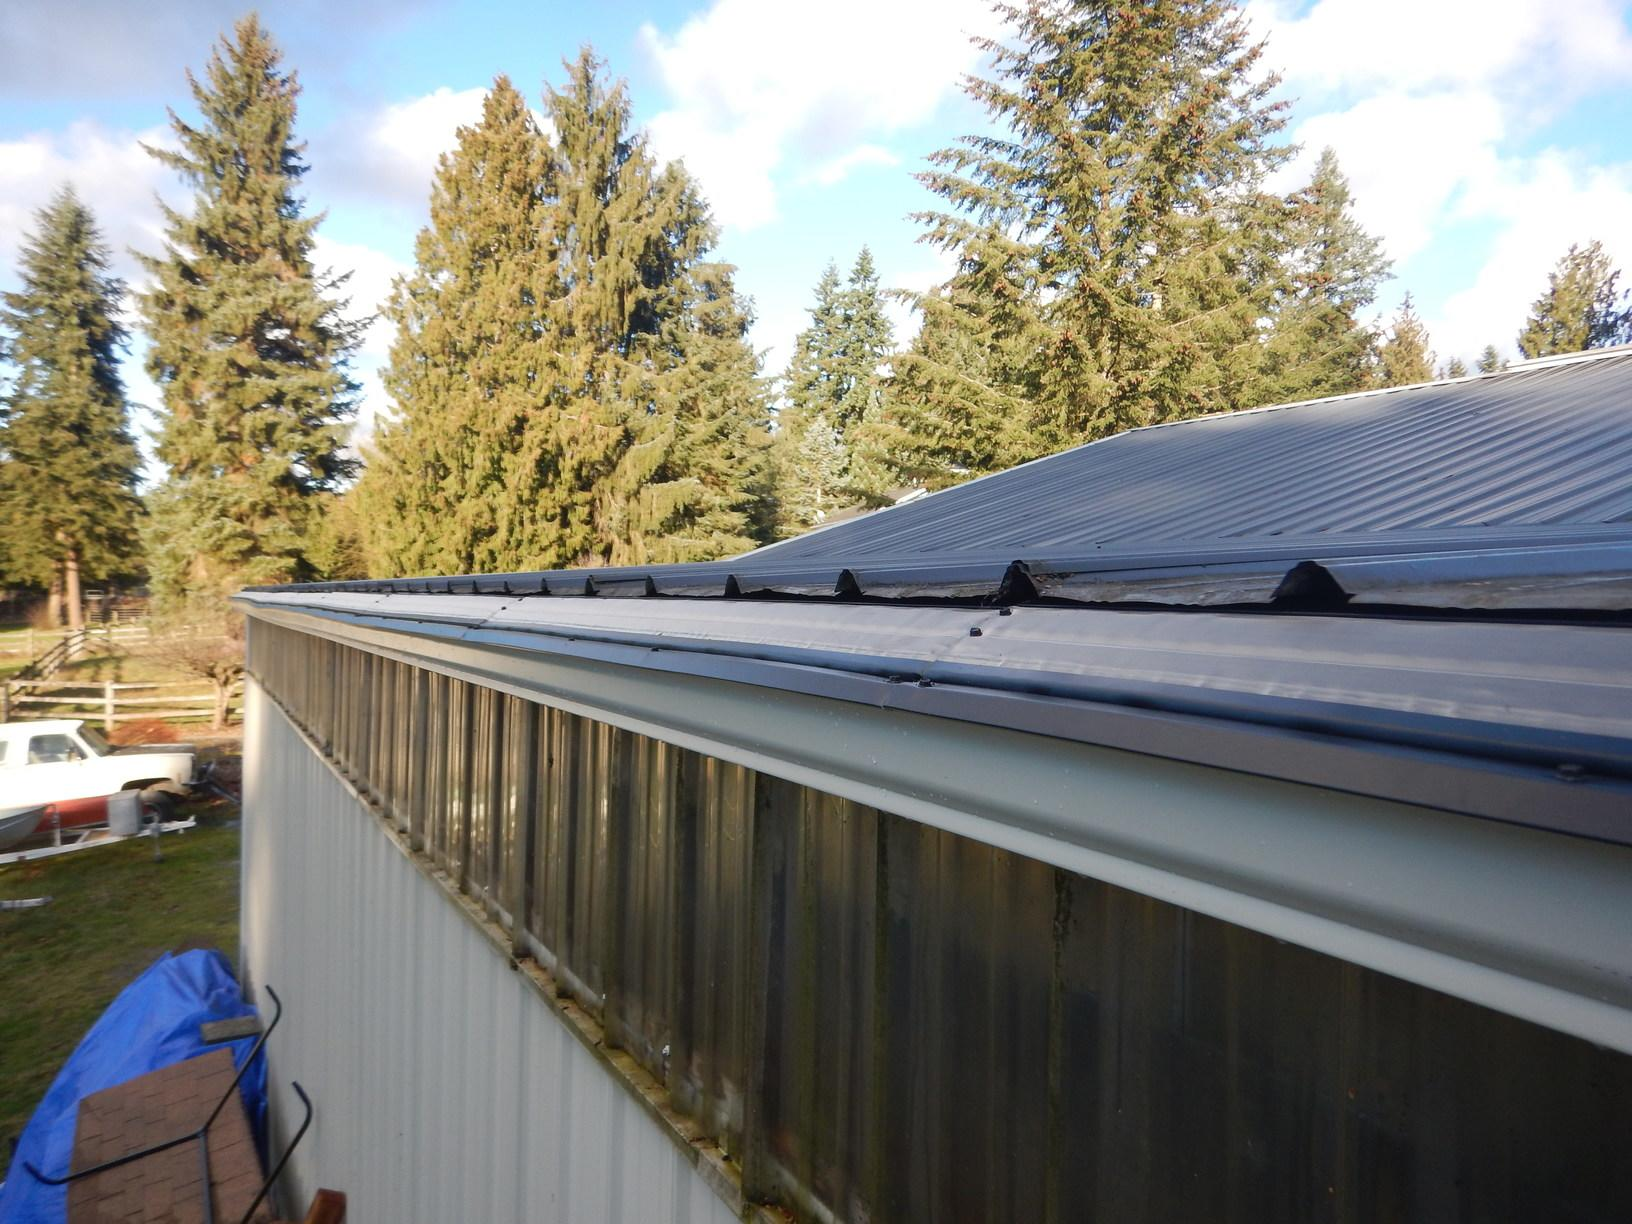 Bad Gutter Protection System Replaced With MasterShield Gutter Guards in the Graham, WA - After Photo